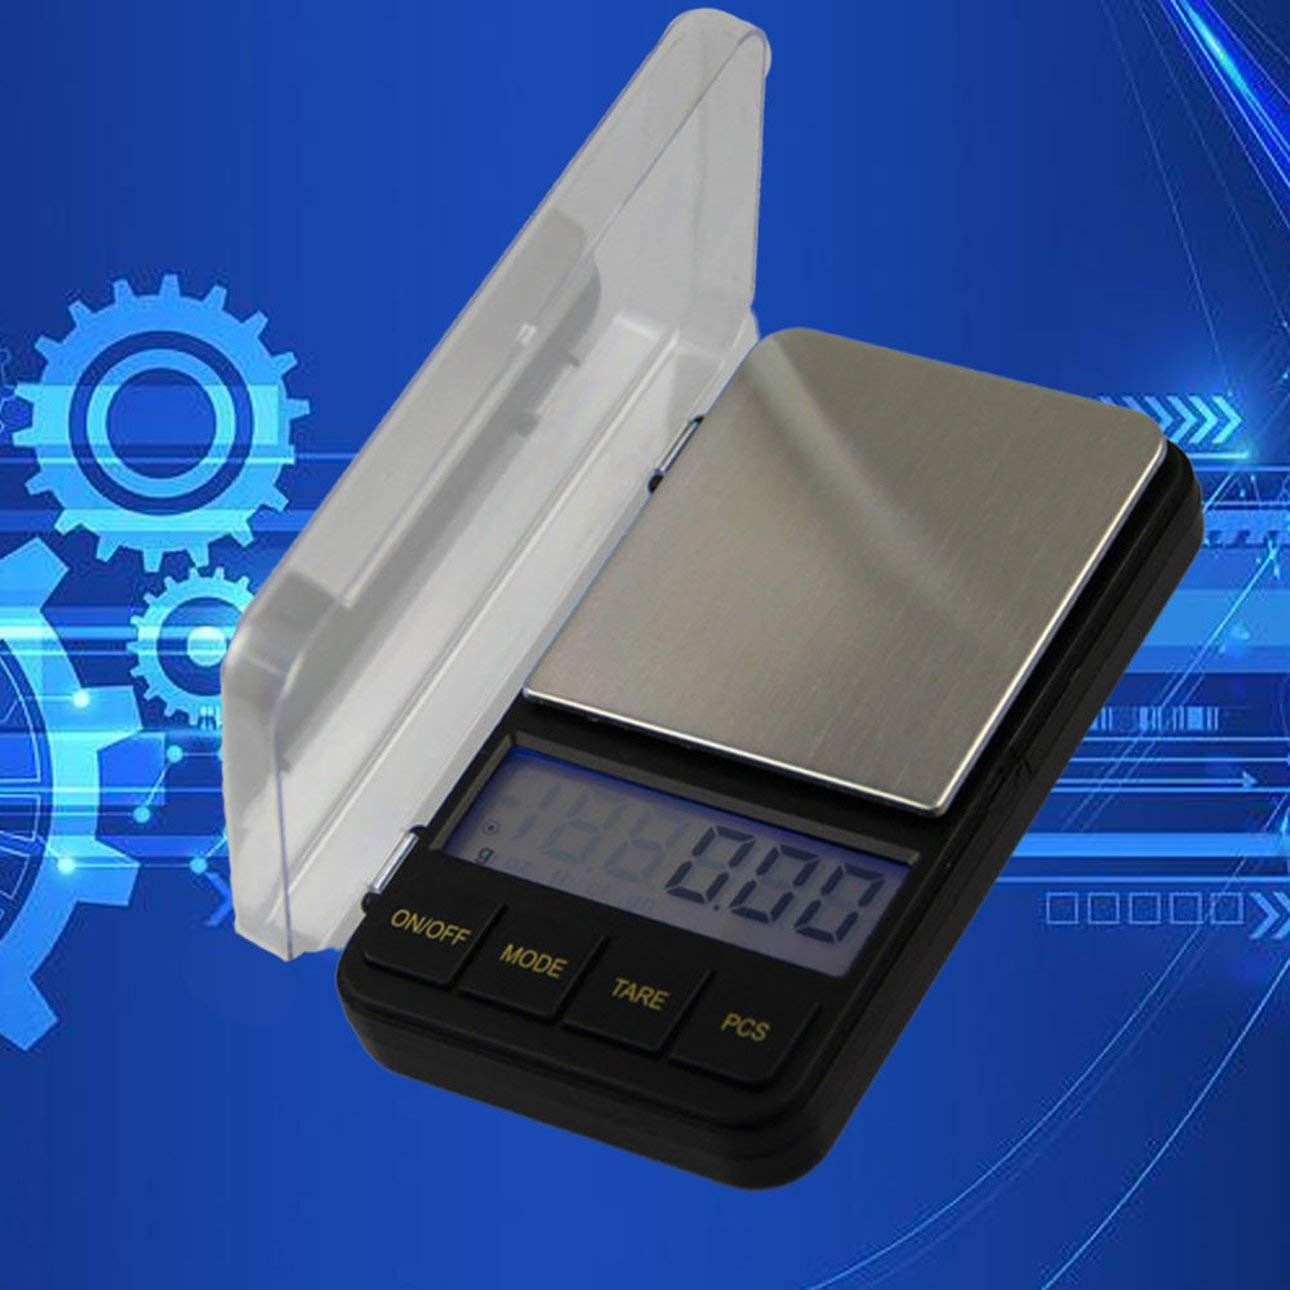 Liobaba Mini Portable Digital Pocket Scale Jewelry Scales Electronic Balance LCD Electronic Pocket Scale Weight Balance